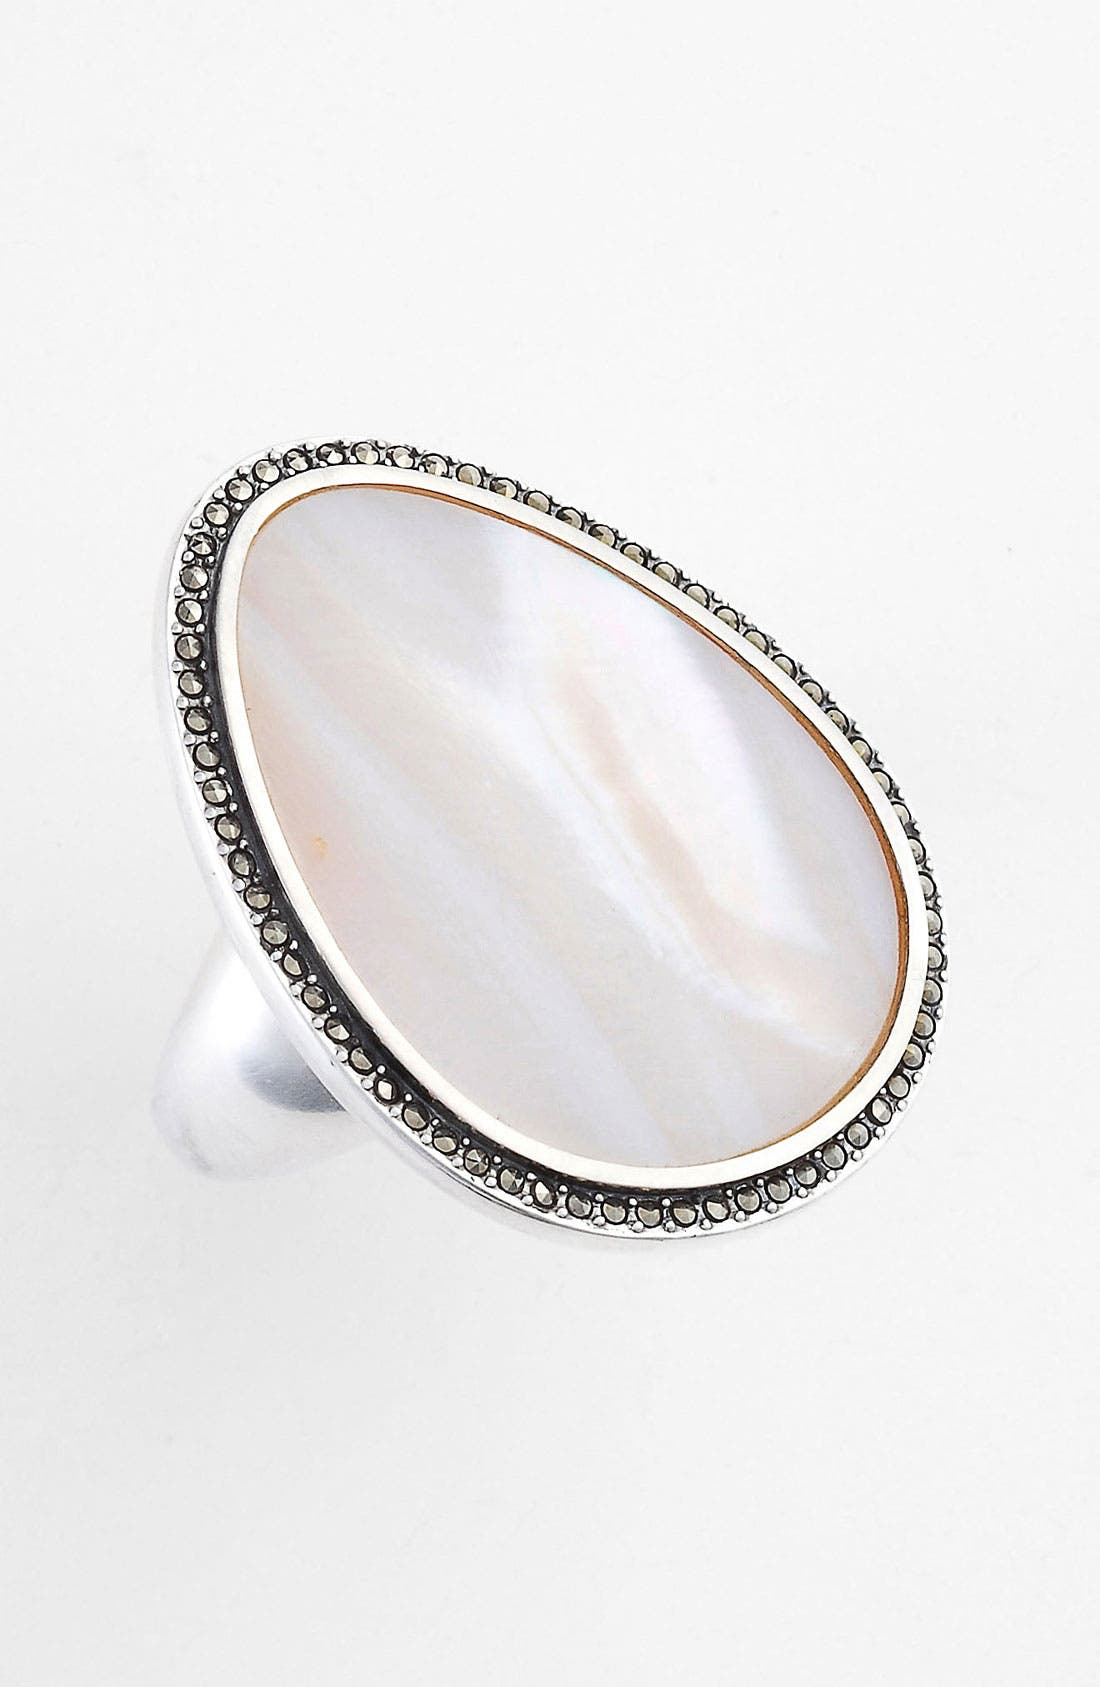 Main Image - Judith Jack Mother-of-Pearl Ring